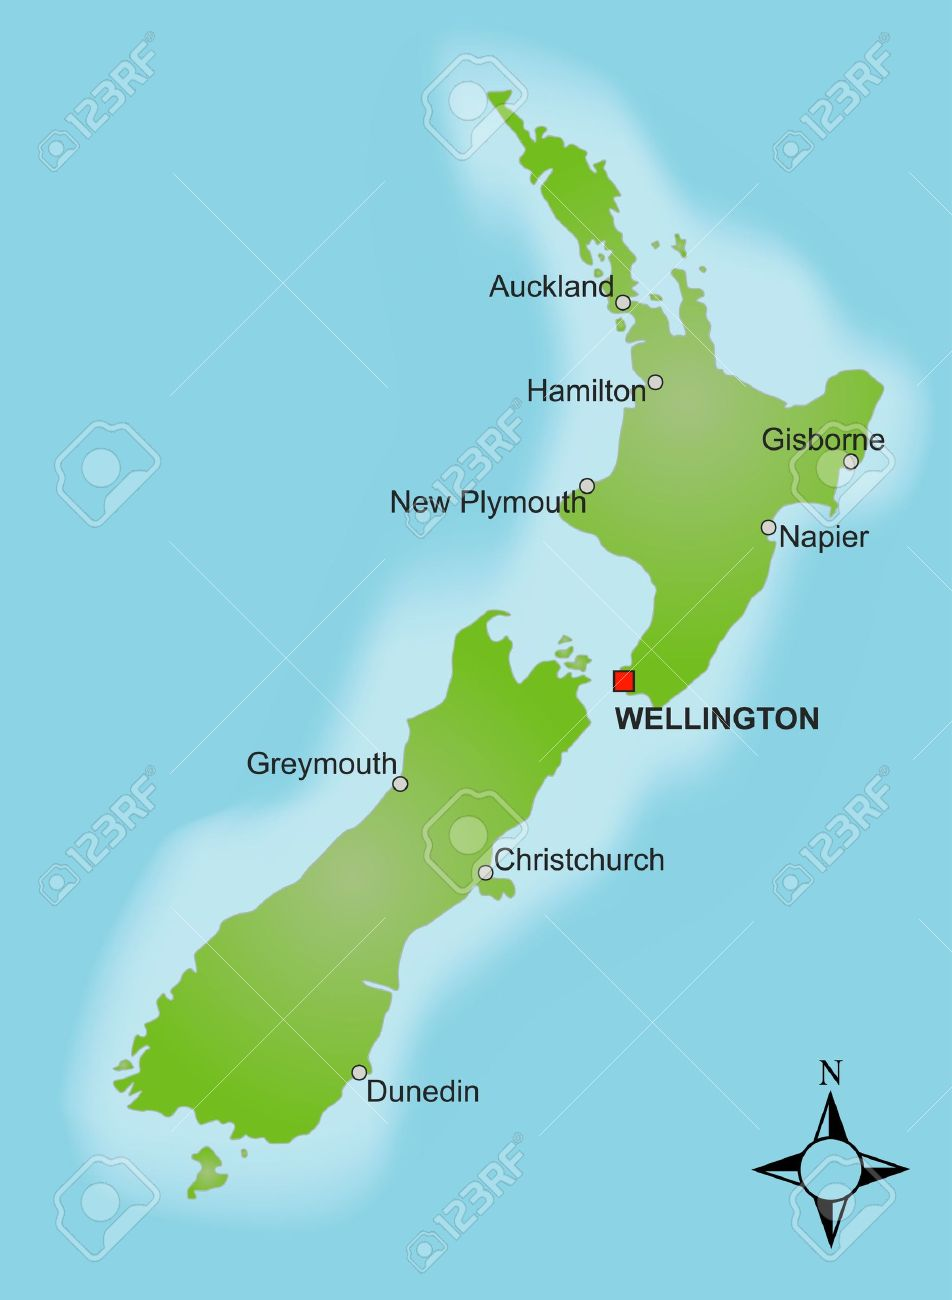 A Stylized Map Of New Zealand Showing Different Cities. Stock Photo ...